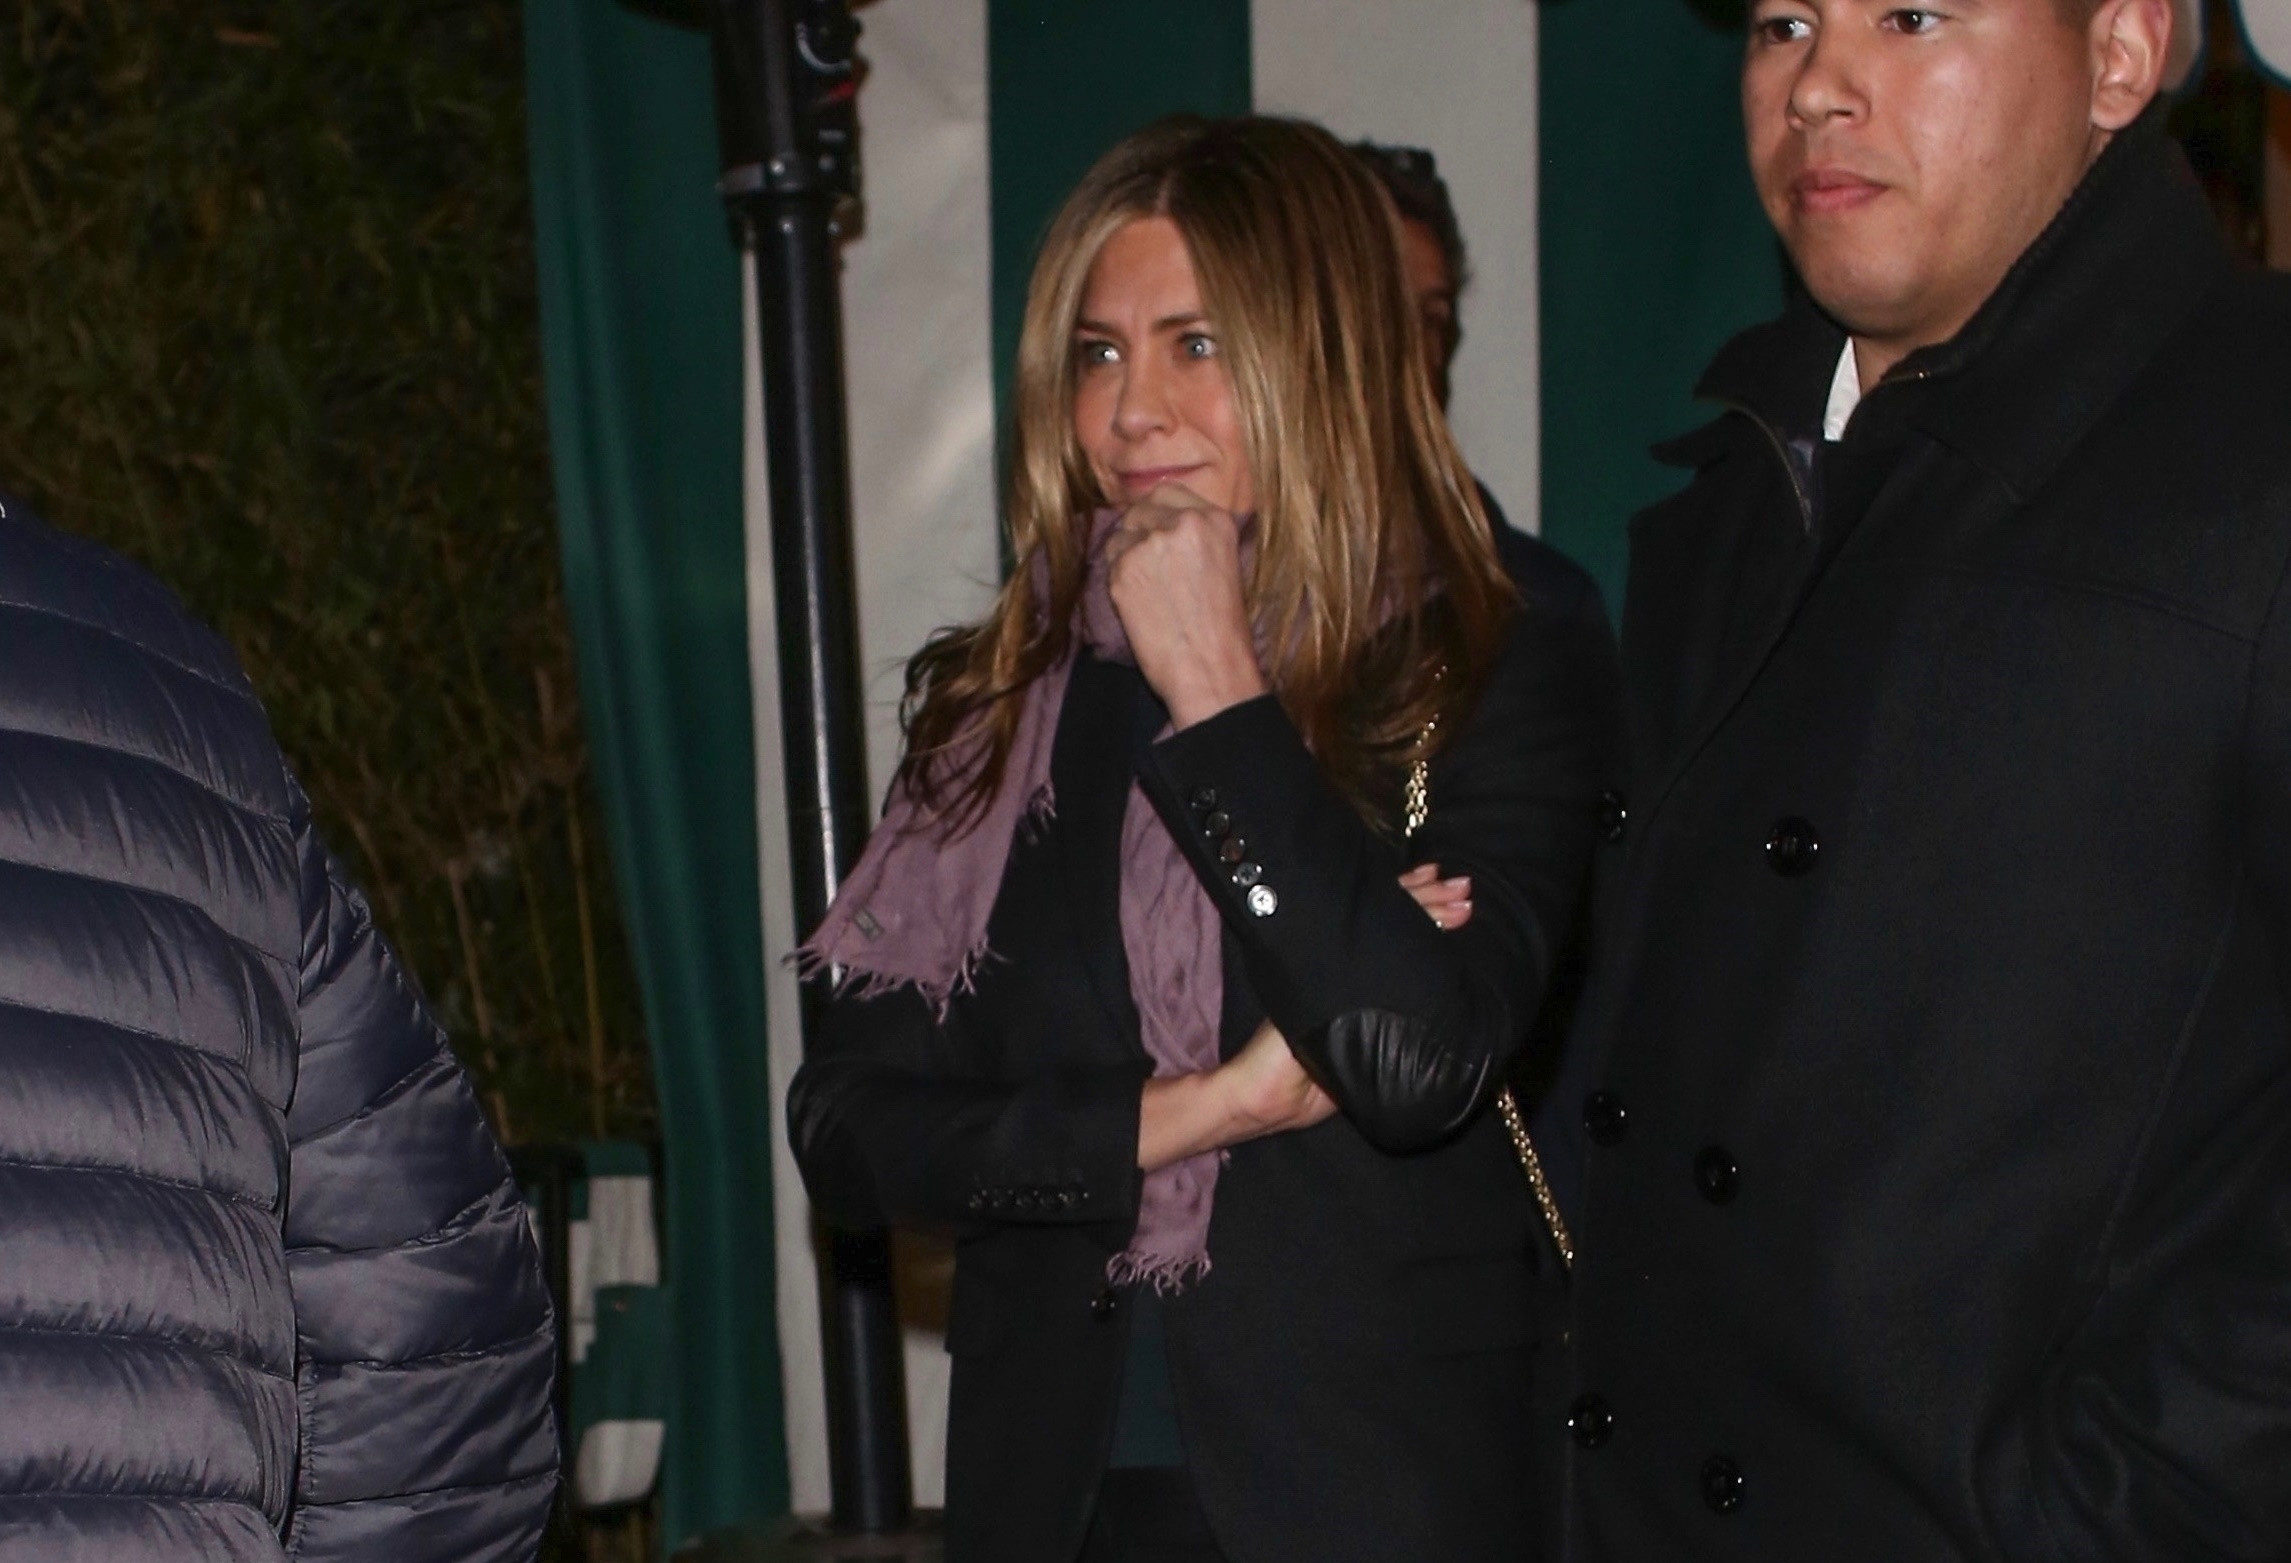 Jennifer Aniston and Courteney Cox enjoy girls' night out in West Hollywood after Matthew Perry's cryptic Friends tweet